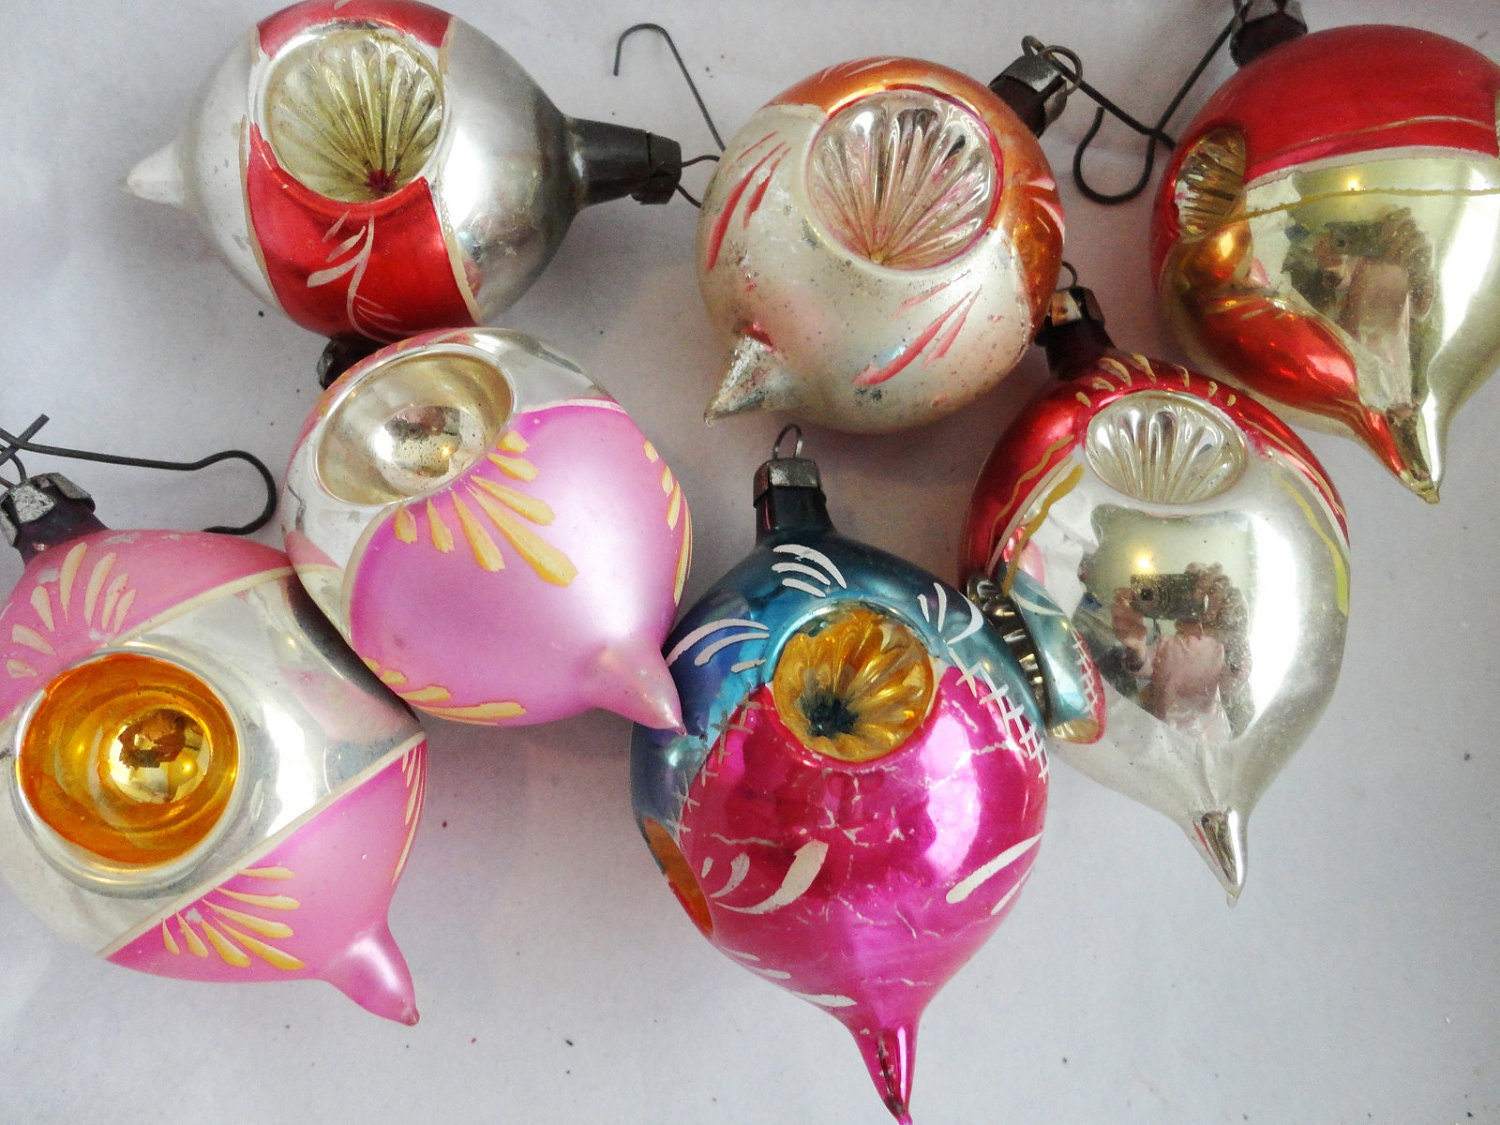 Clearance sale 7 vintage mercury glass christmas ornaments for Christmas ornament sale clearance